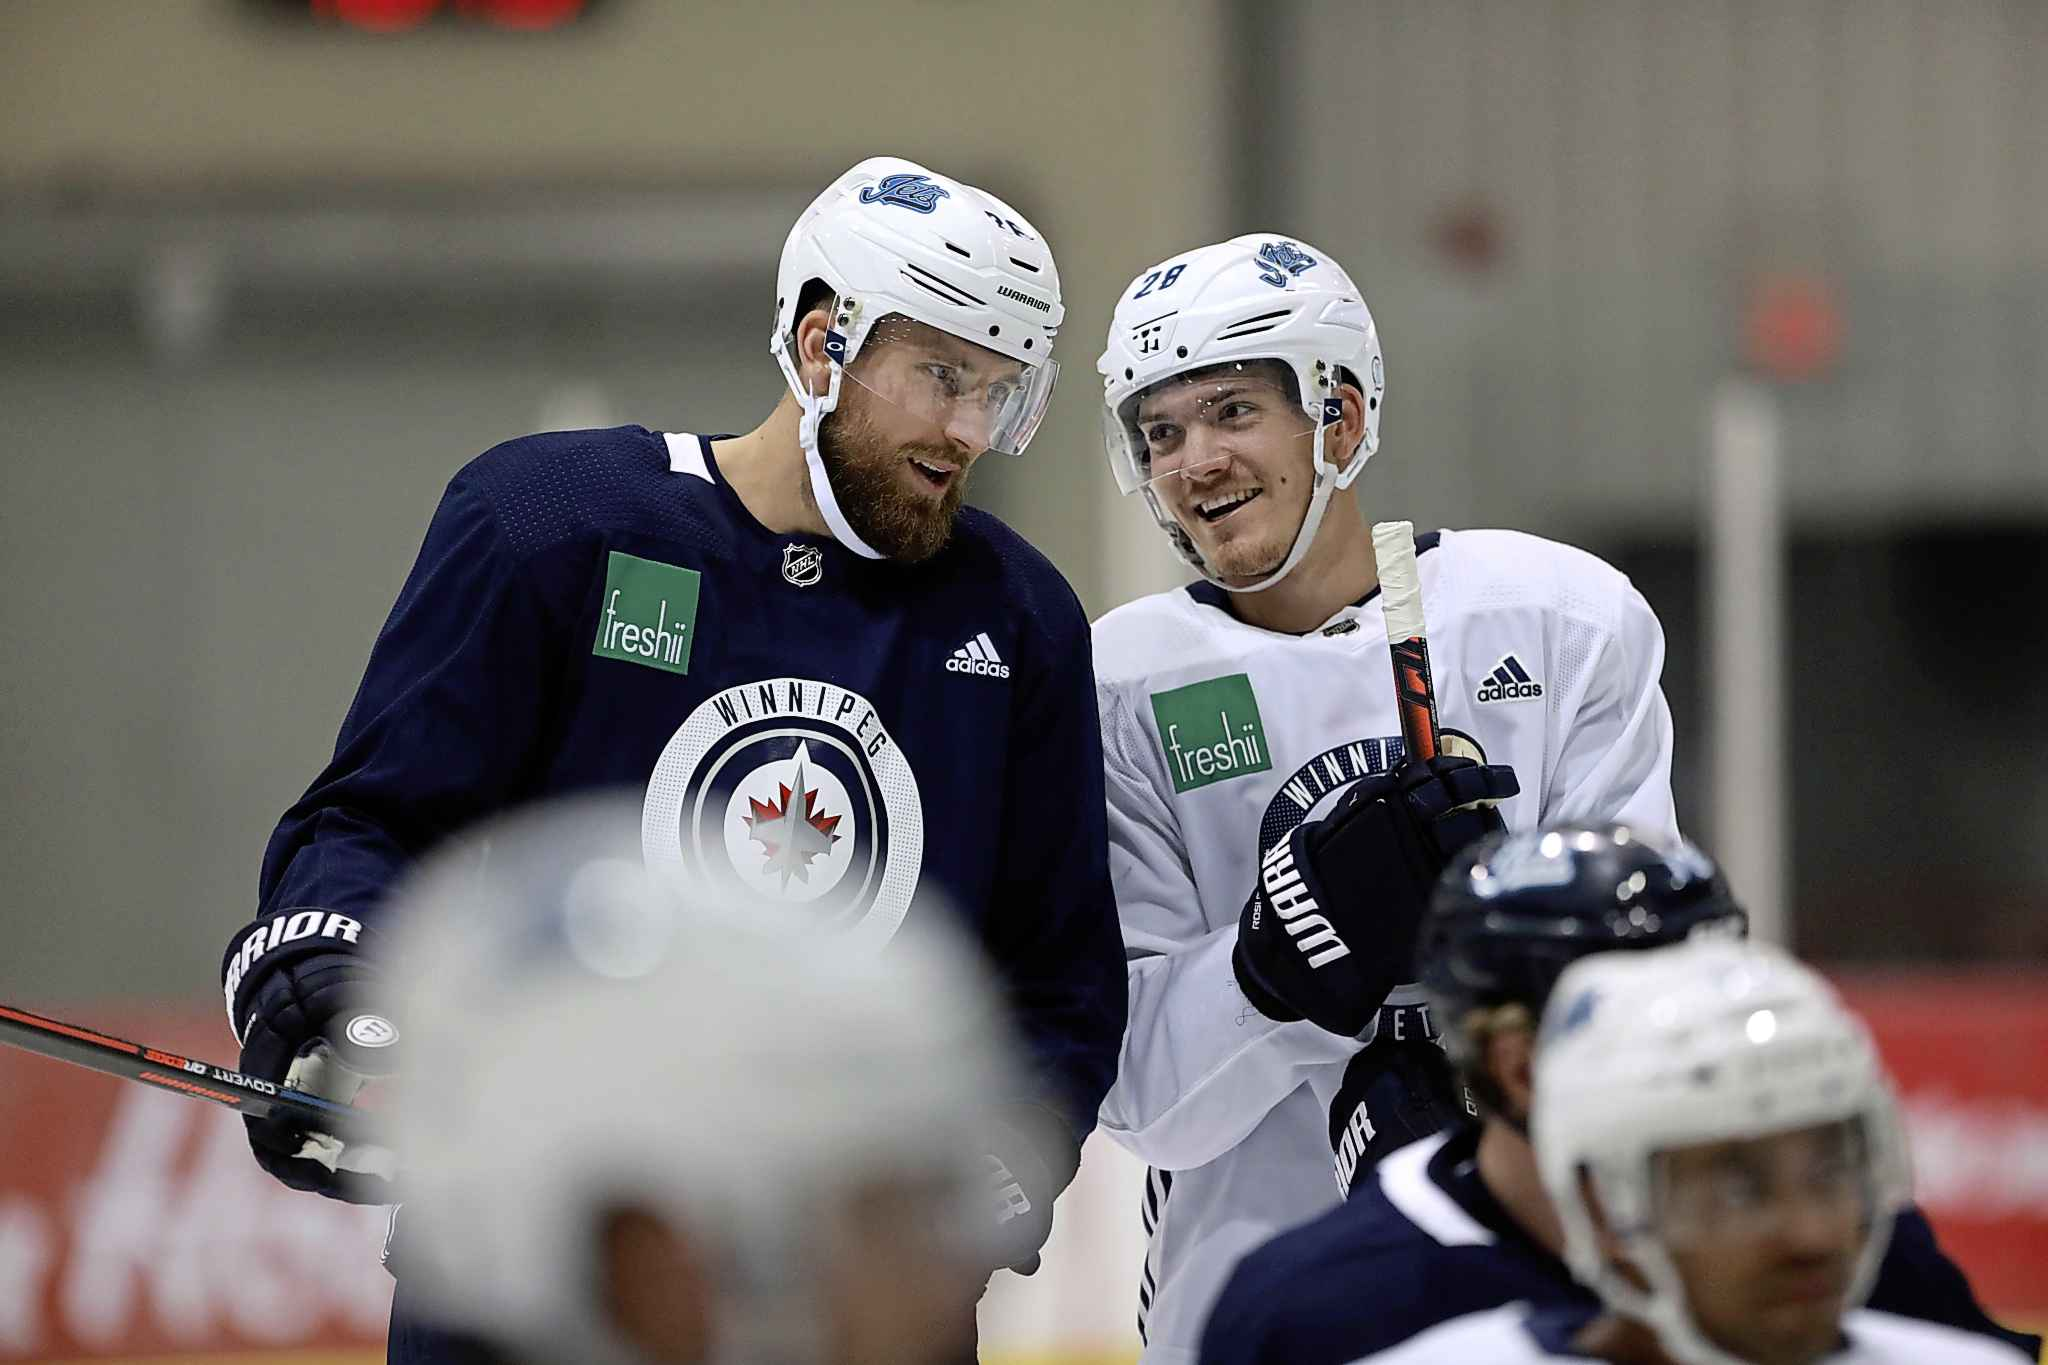 Winnipeg Jets captain Blake Wheeler, left, is all smiles while talking to young centreman Jack Roslovic during a workout at MTS Iceplex Tuesday.